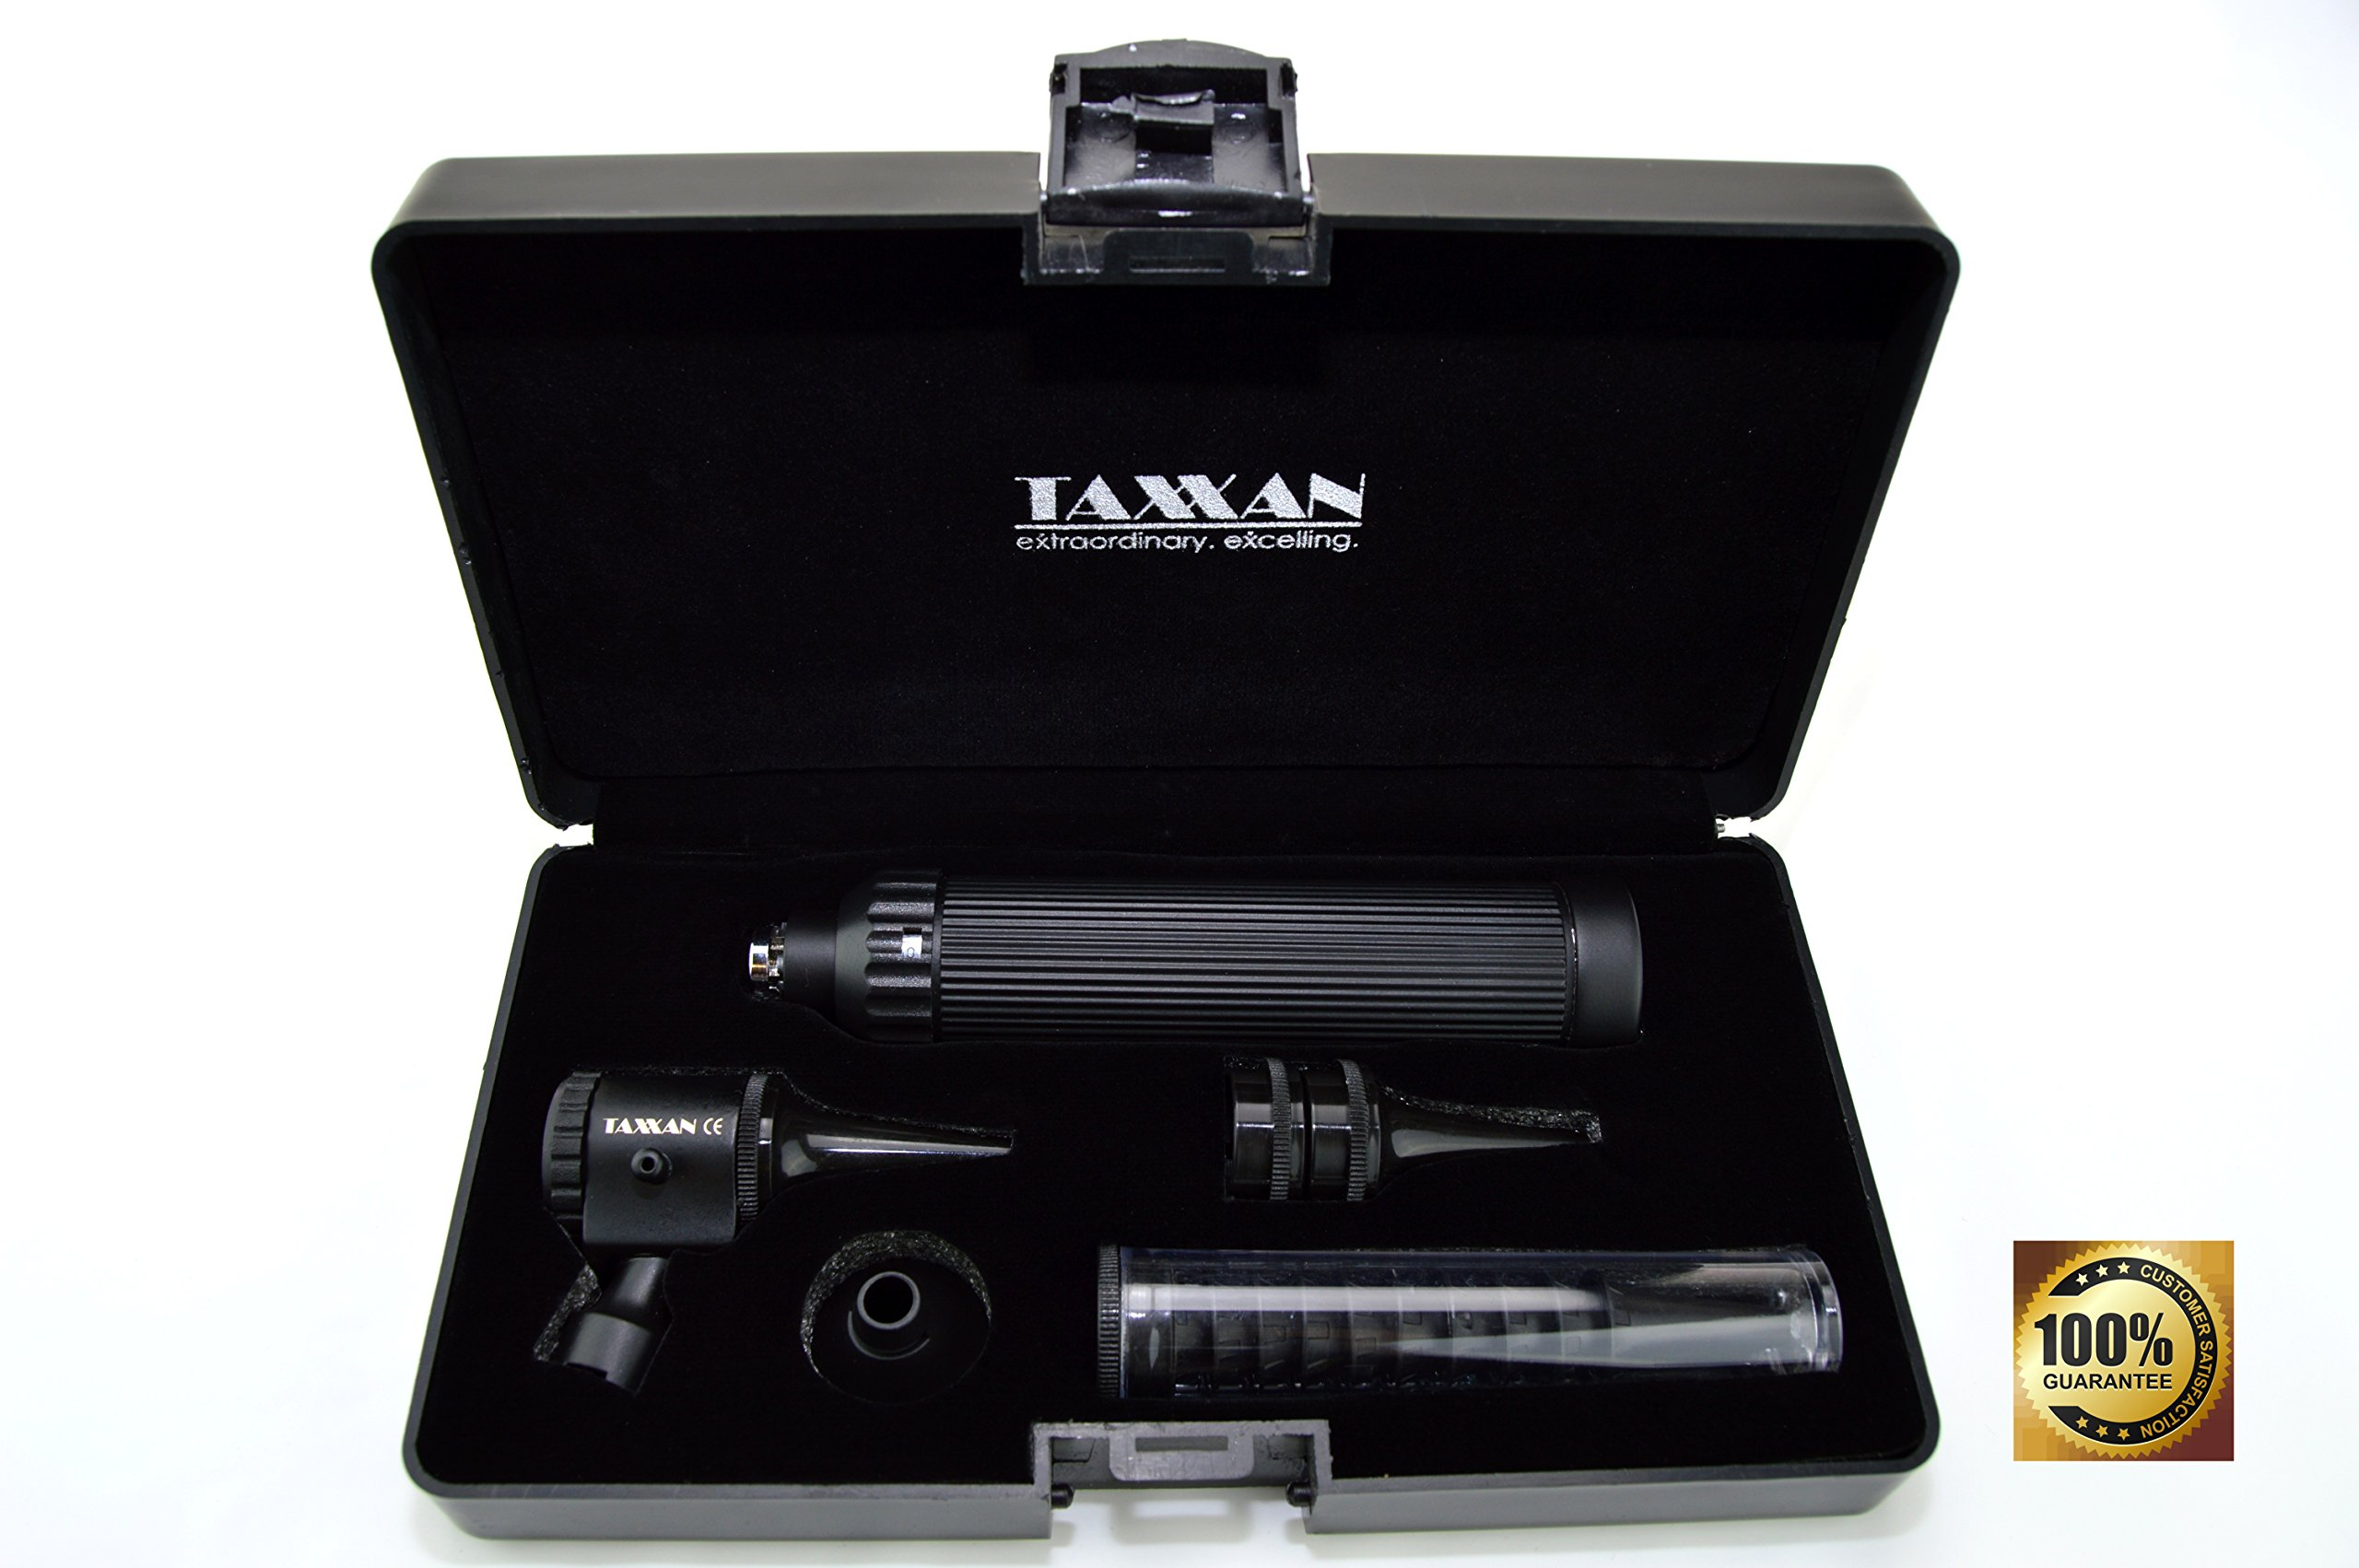 TAXXAN BLACK OTOSCOPE ENT DIAGNOSTIC SET WITH METAL ADAPTER TO USE STANDARD DISPOSABLE SPECULUM